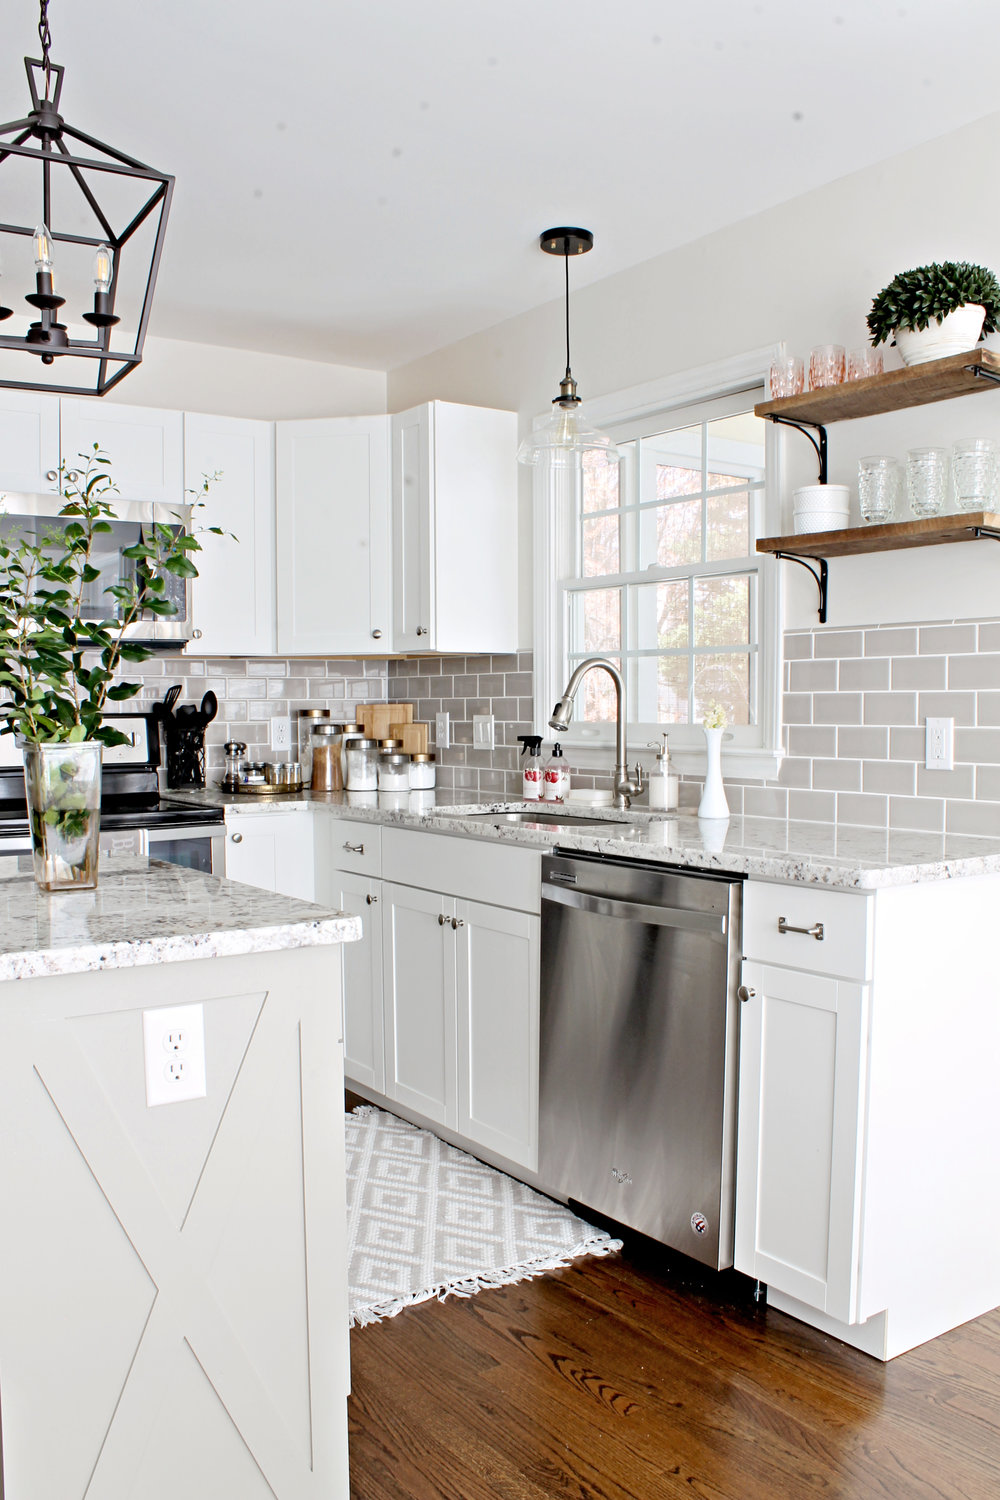 Elizabeth Burns | DIY Kitchen Island Makeover X Trim and Shiplap - Sherwin Williams Dorian Gray and Benjamin Moore Classic Gray Kitchen Remodel